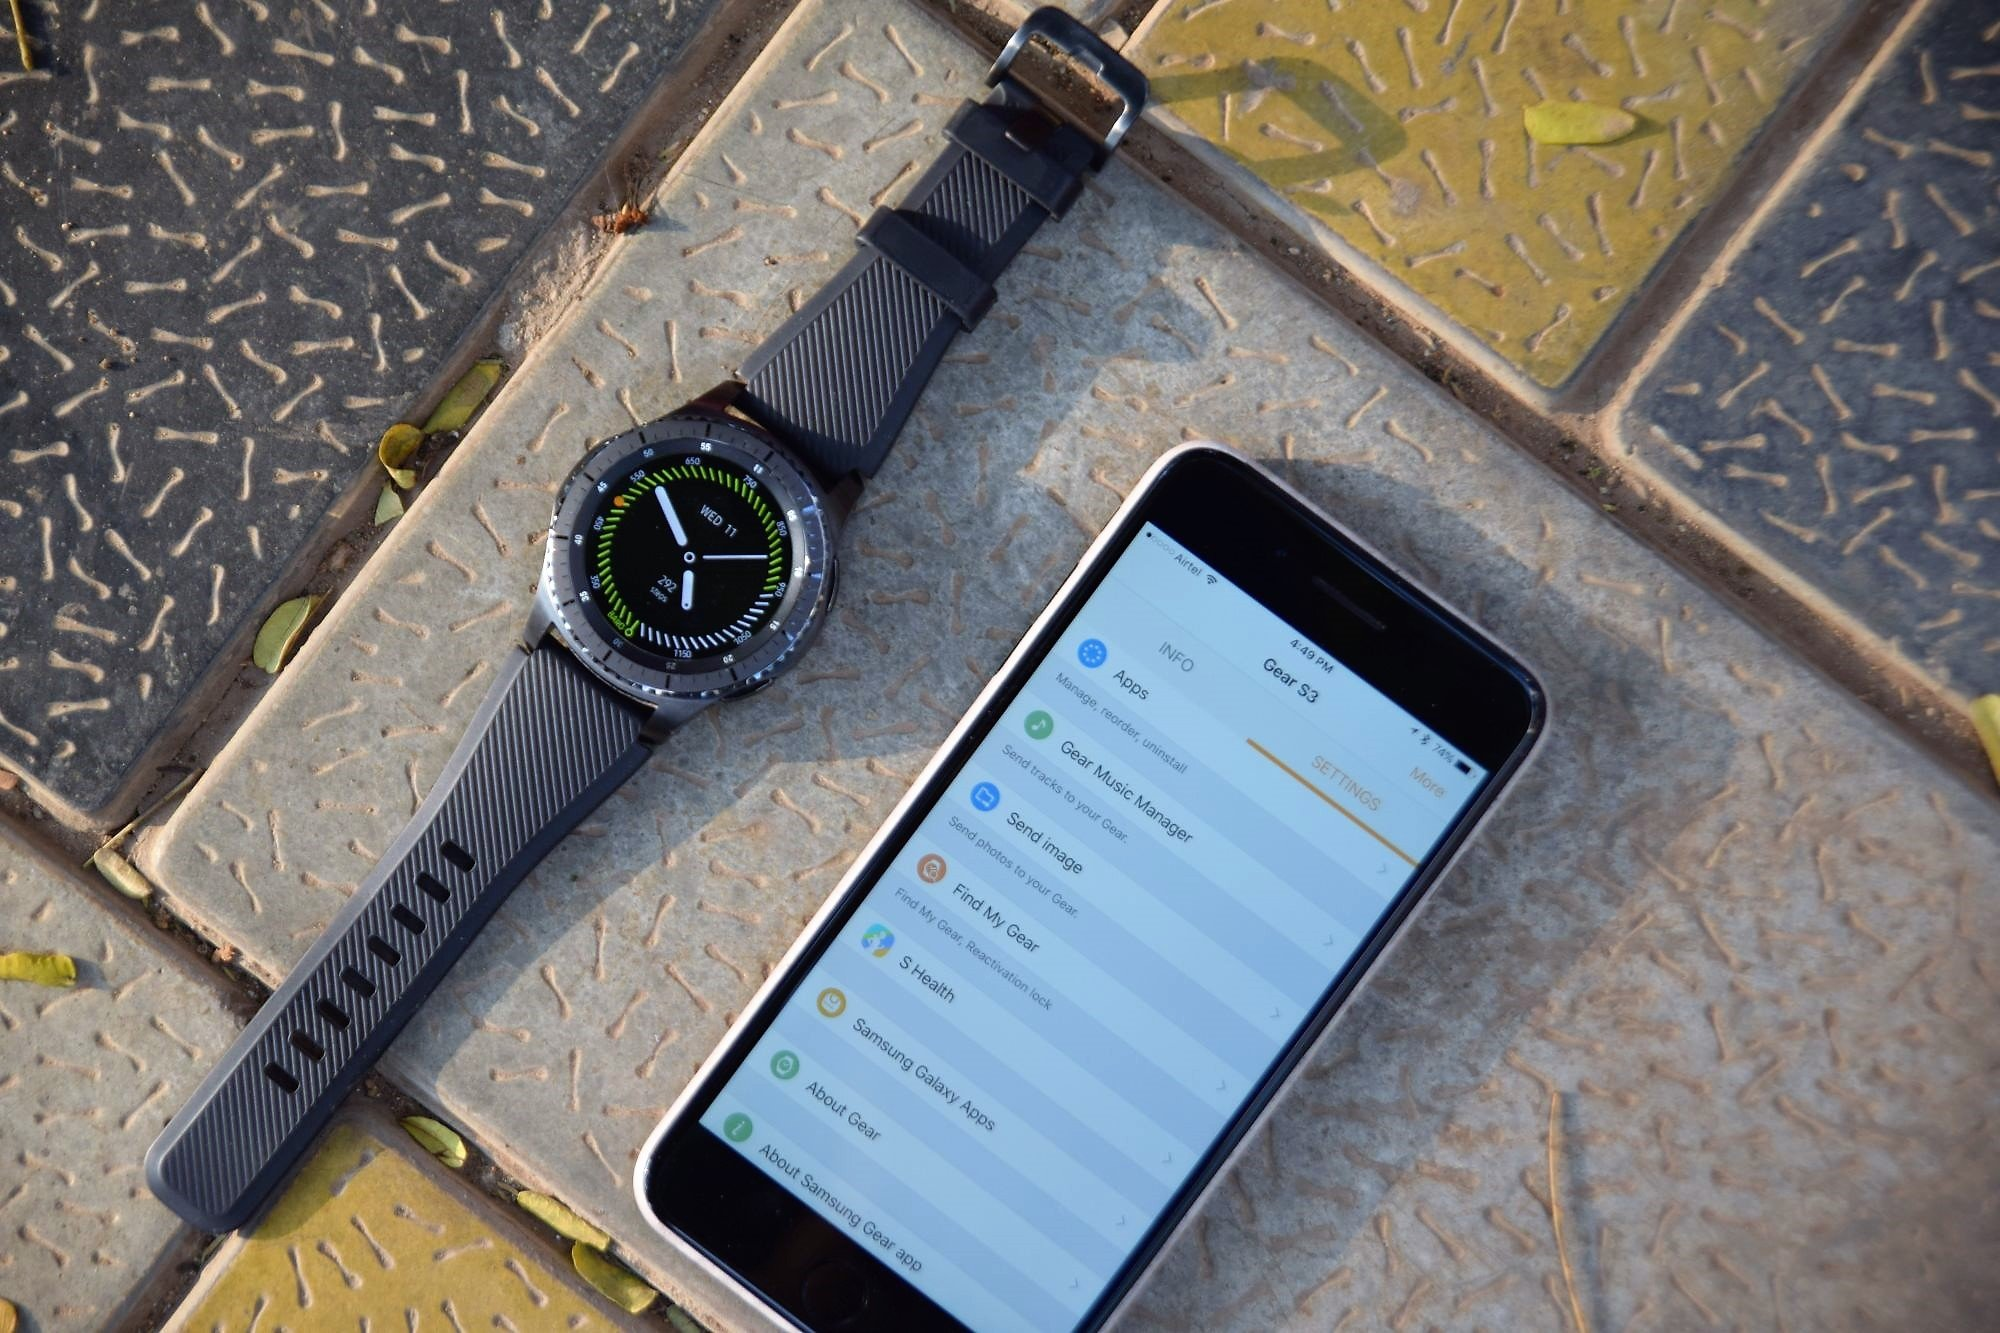 on sale 0c538 0a5ea Here's our experience of using the Gear S3 with an iPhone ...